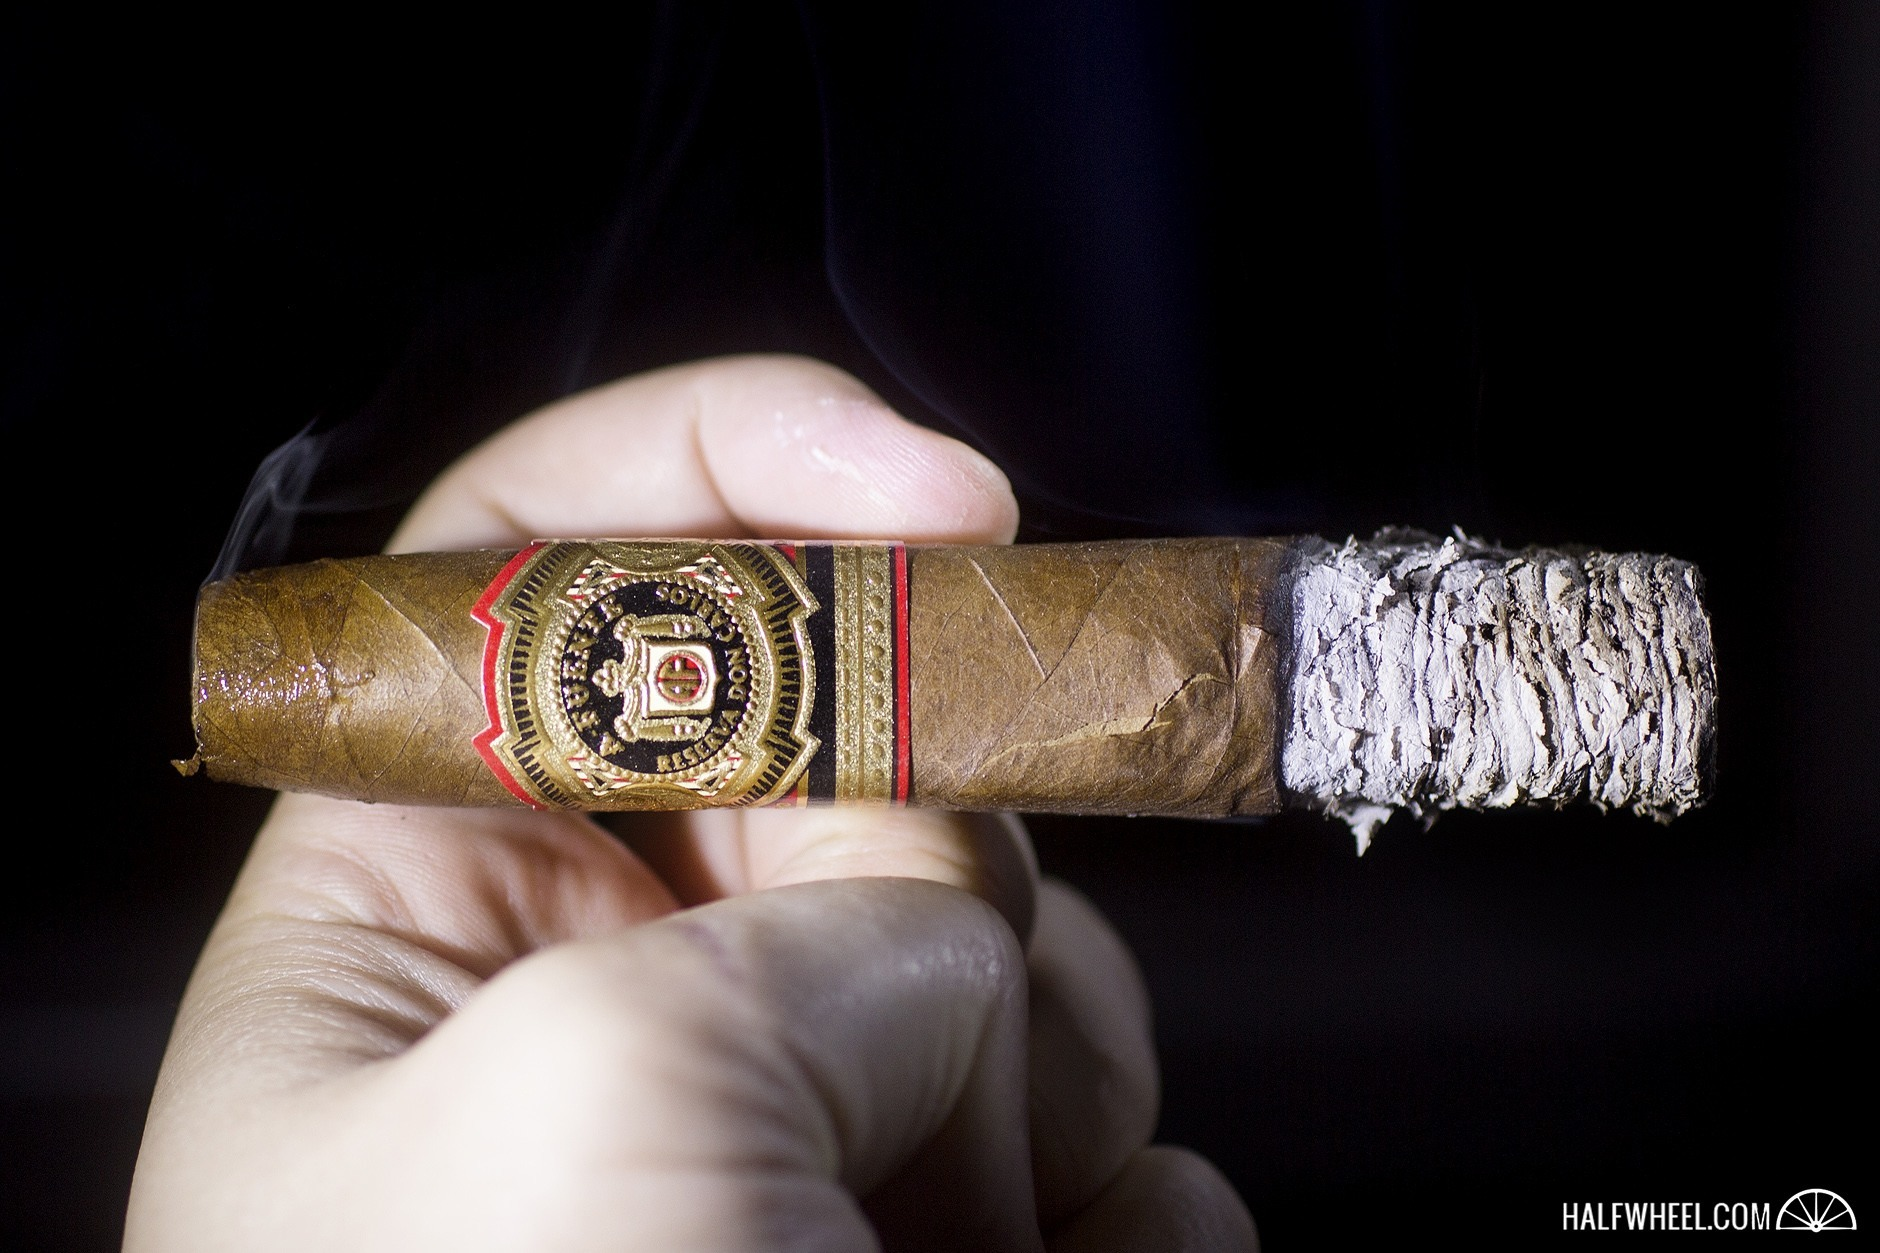 Arturo Fuente Don Carlos Eye of the Shark 2